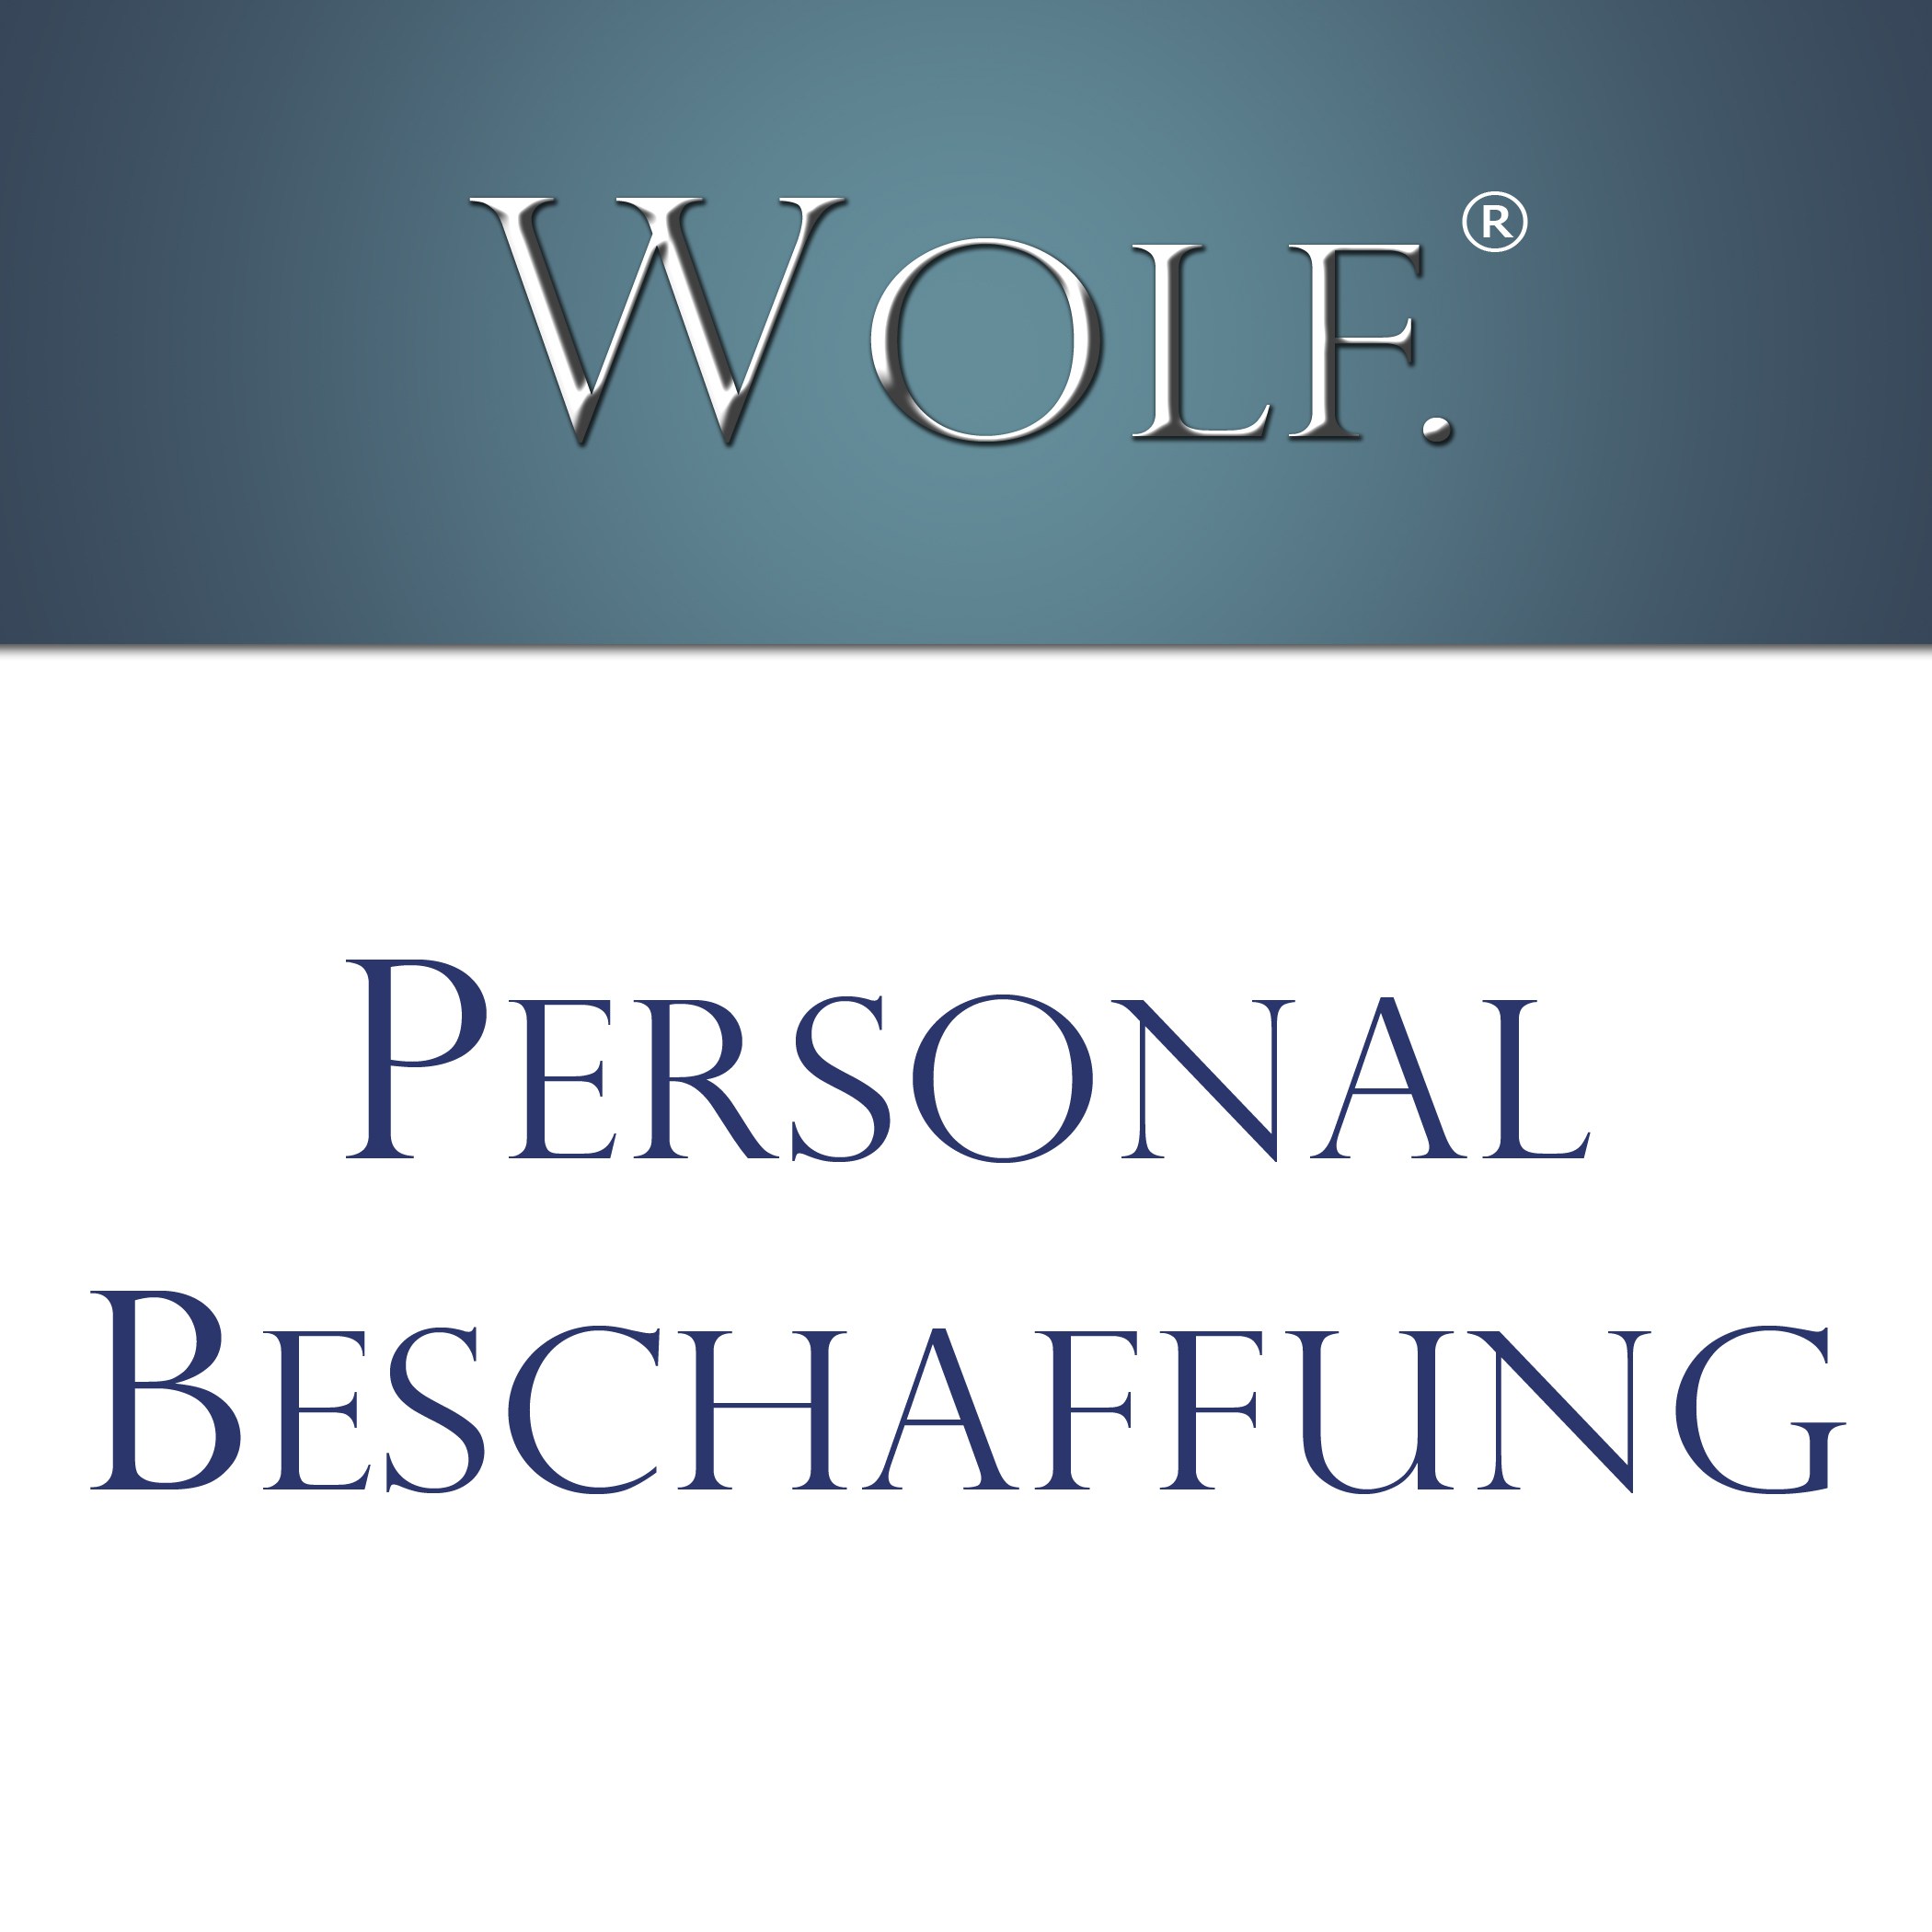 Recruiting. Personalbeschaffung.